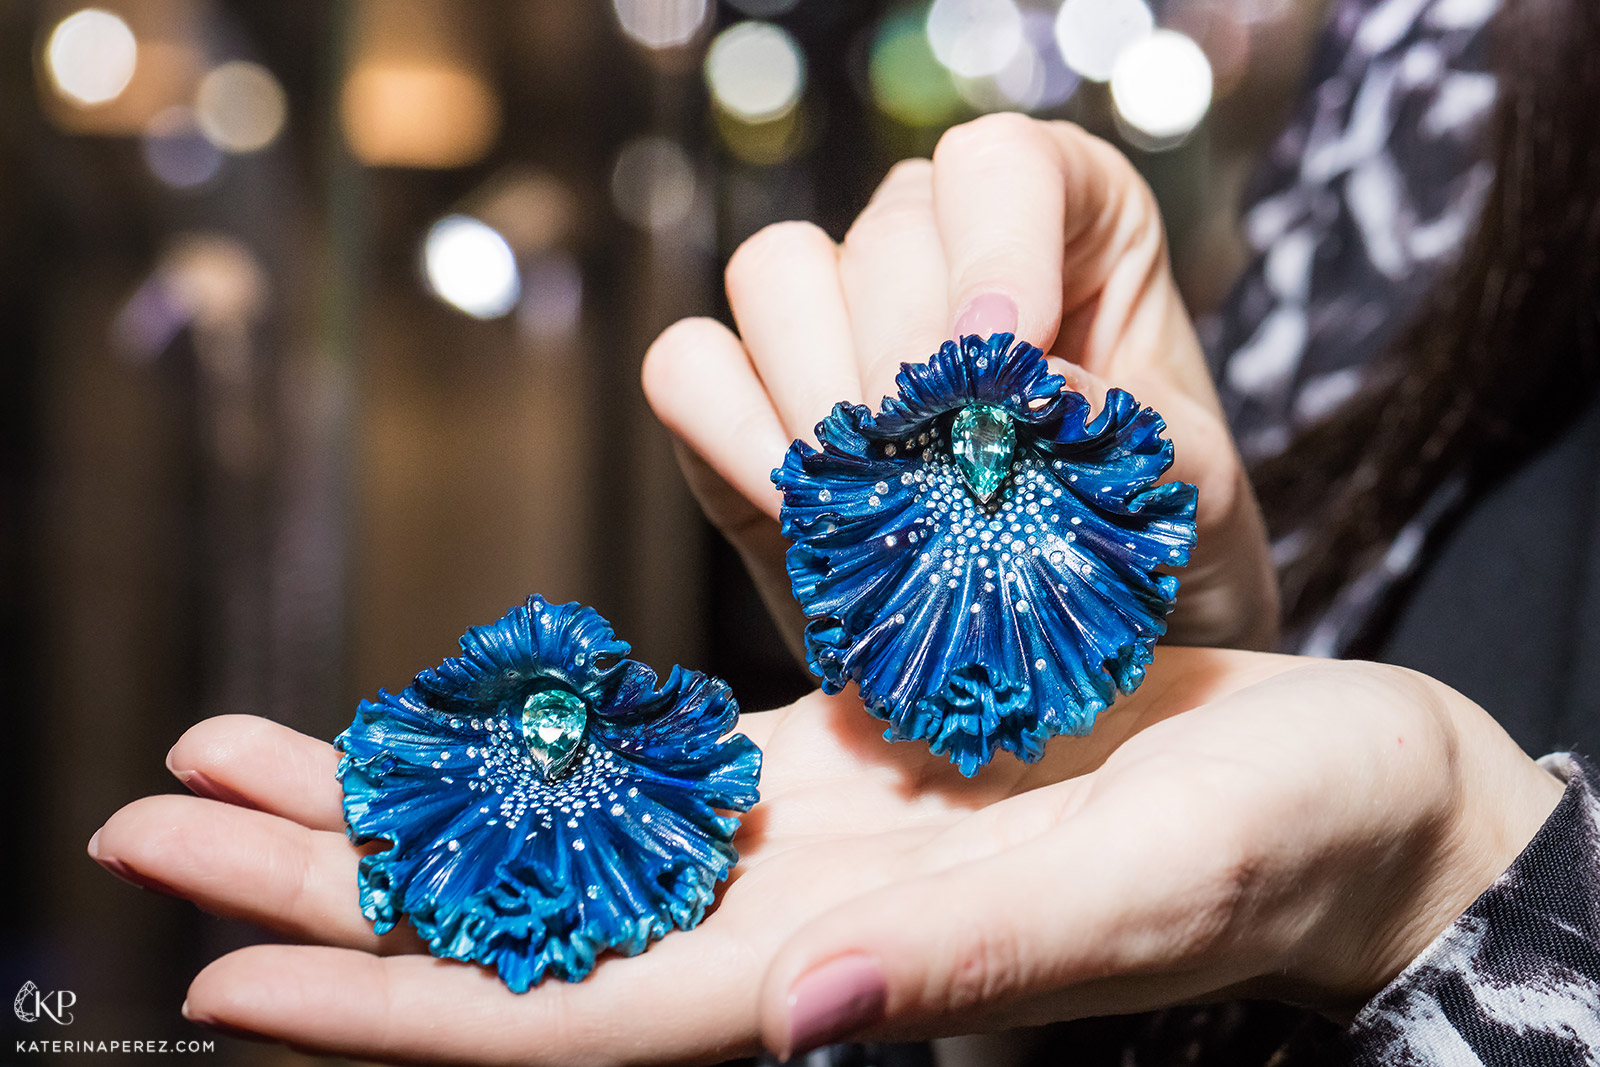 Emmanuel Tarpin 'Blue Orchid' earrings in aluminium, Paraiba and diamonds. Photo by Simon Martner